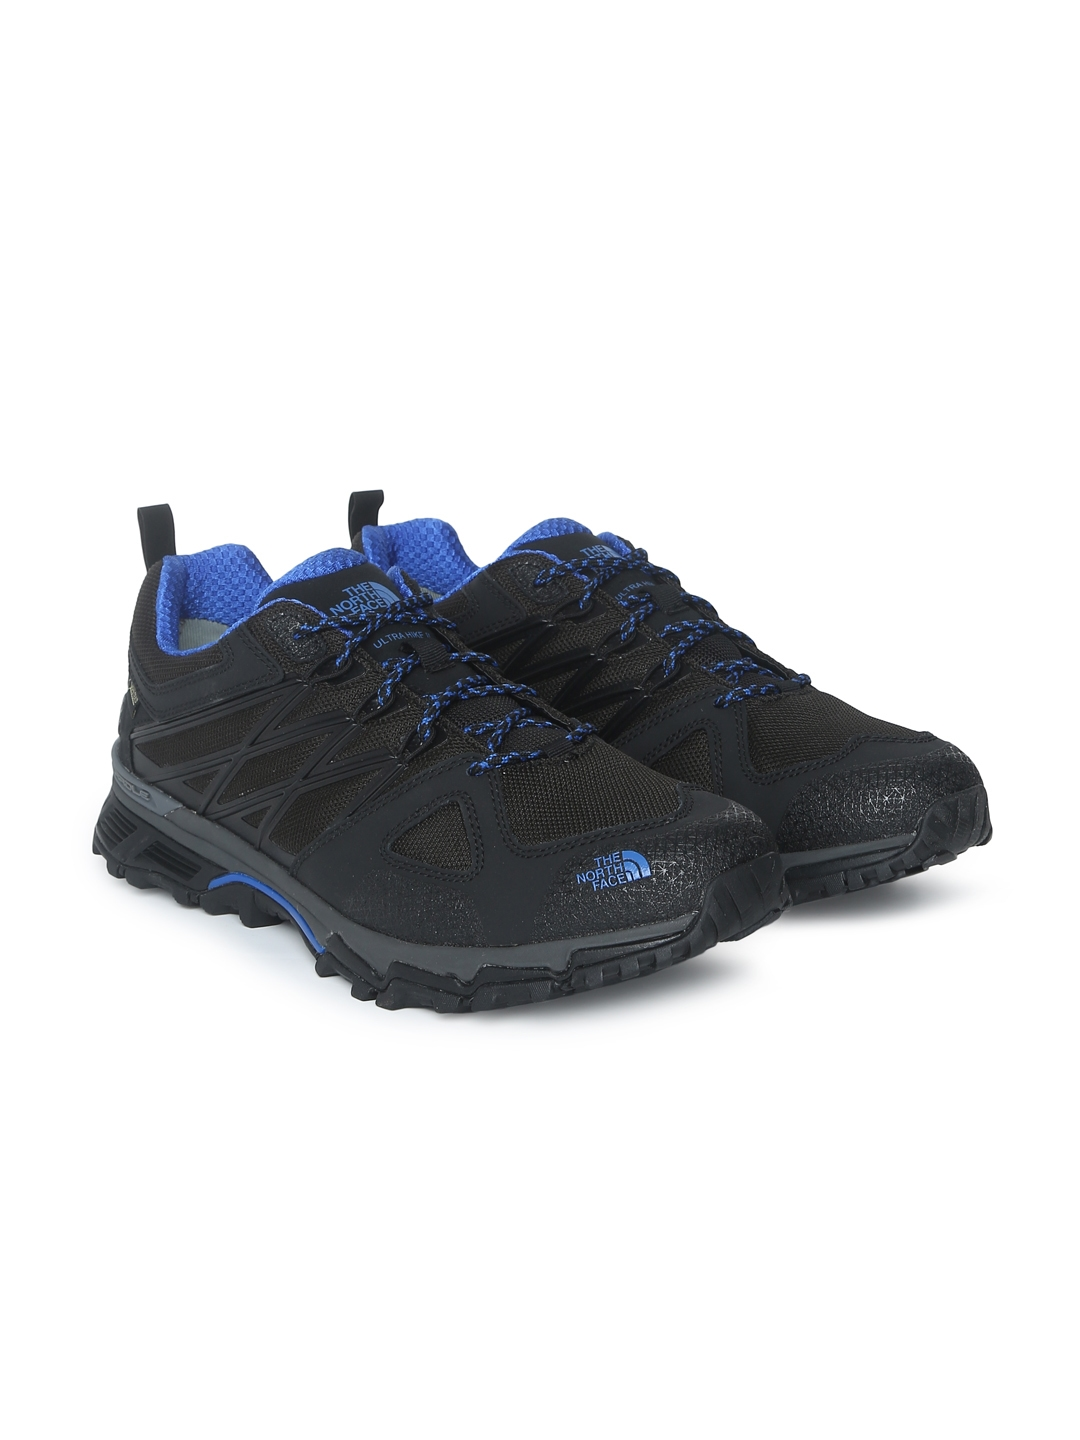 1efa1a78693 The North Face Men Black Solid Ultra Hike II GTX Waterproof Hiking Shoes